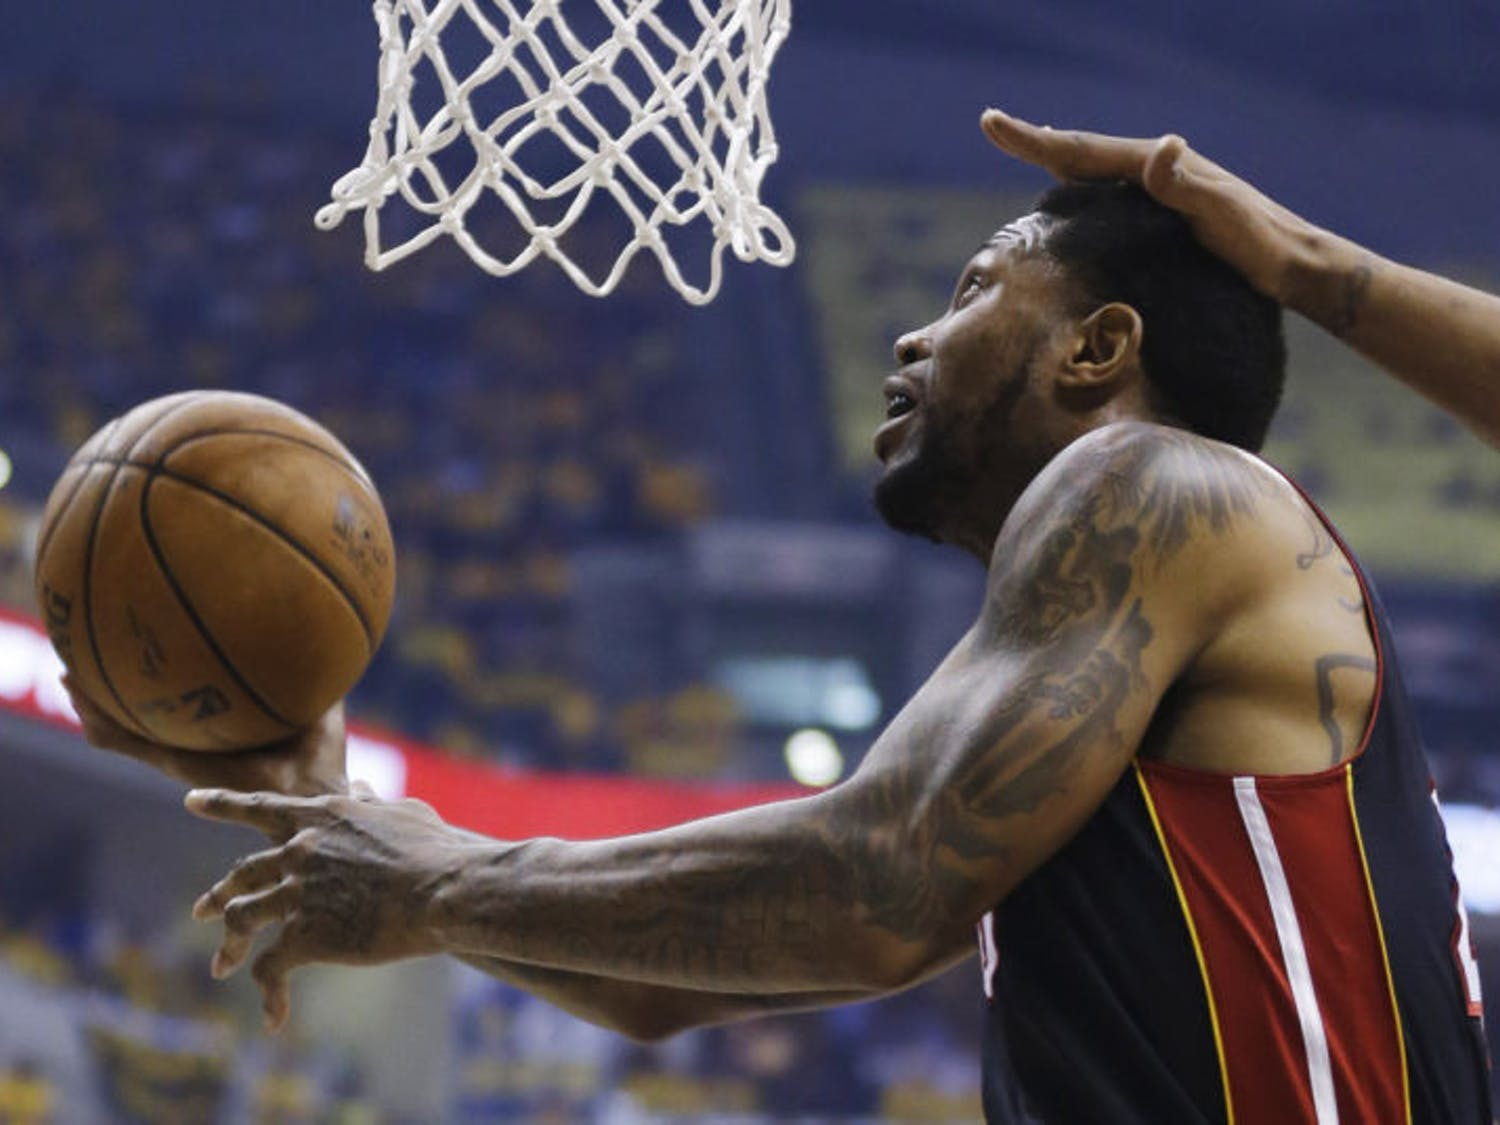 Miami Heat forward Udonis Haslem shoots against the Indiana Pacers during the first half of Game 5 of the Eastern Conference finals.